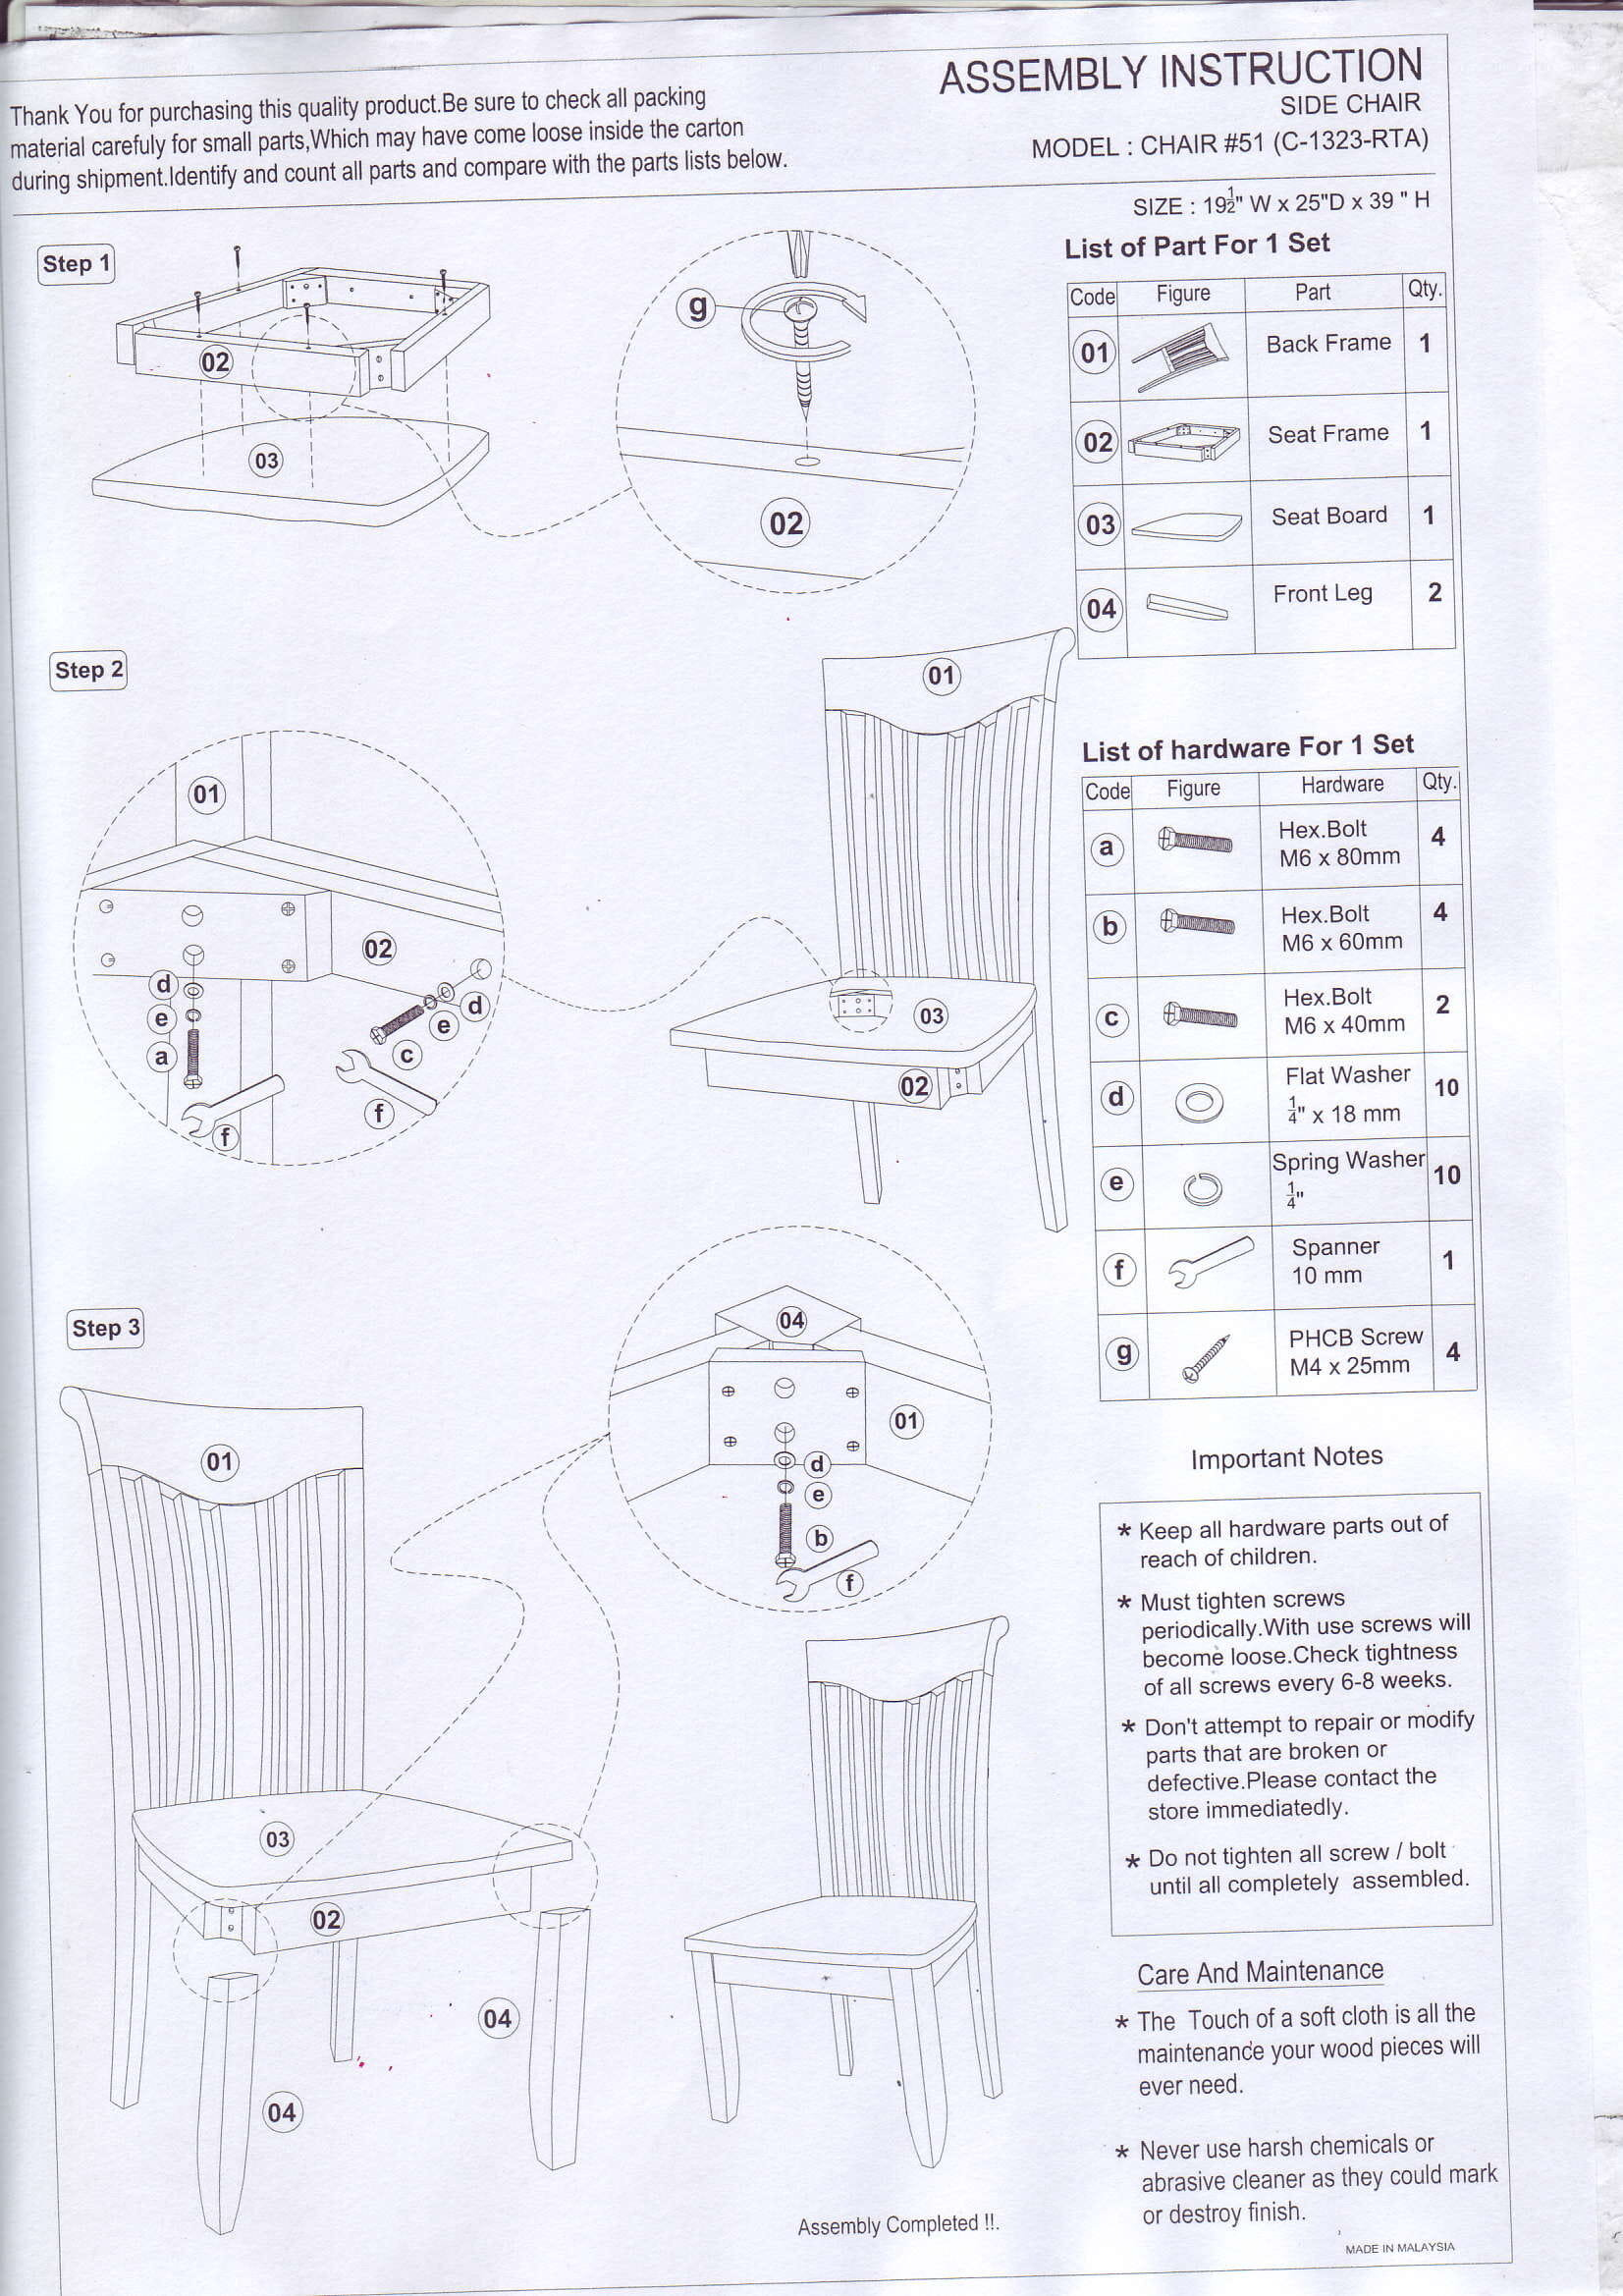 AI Chair#51Assembly Instruction-1.jpg